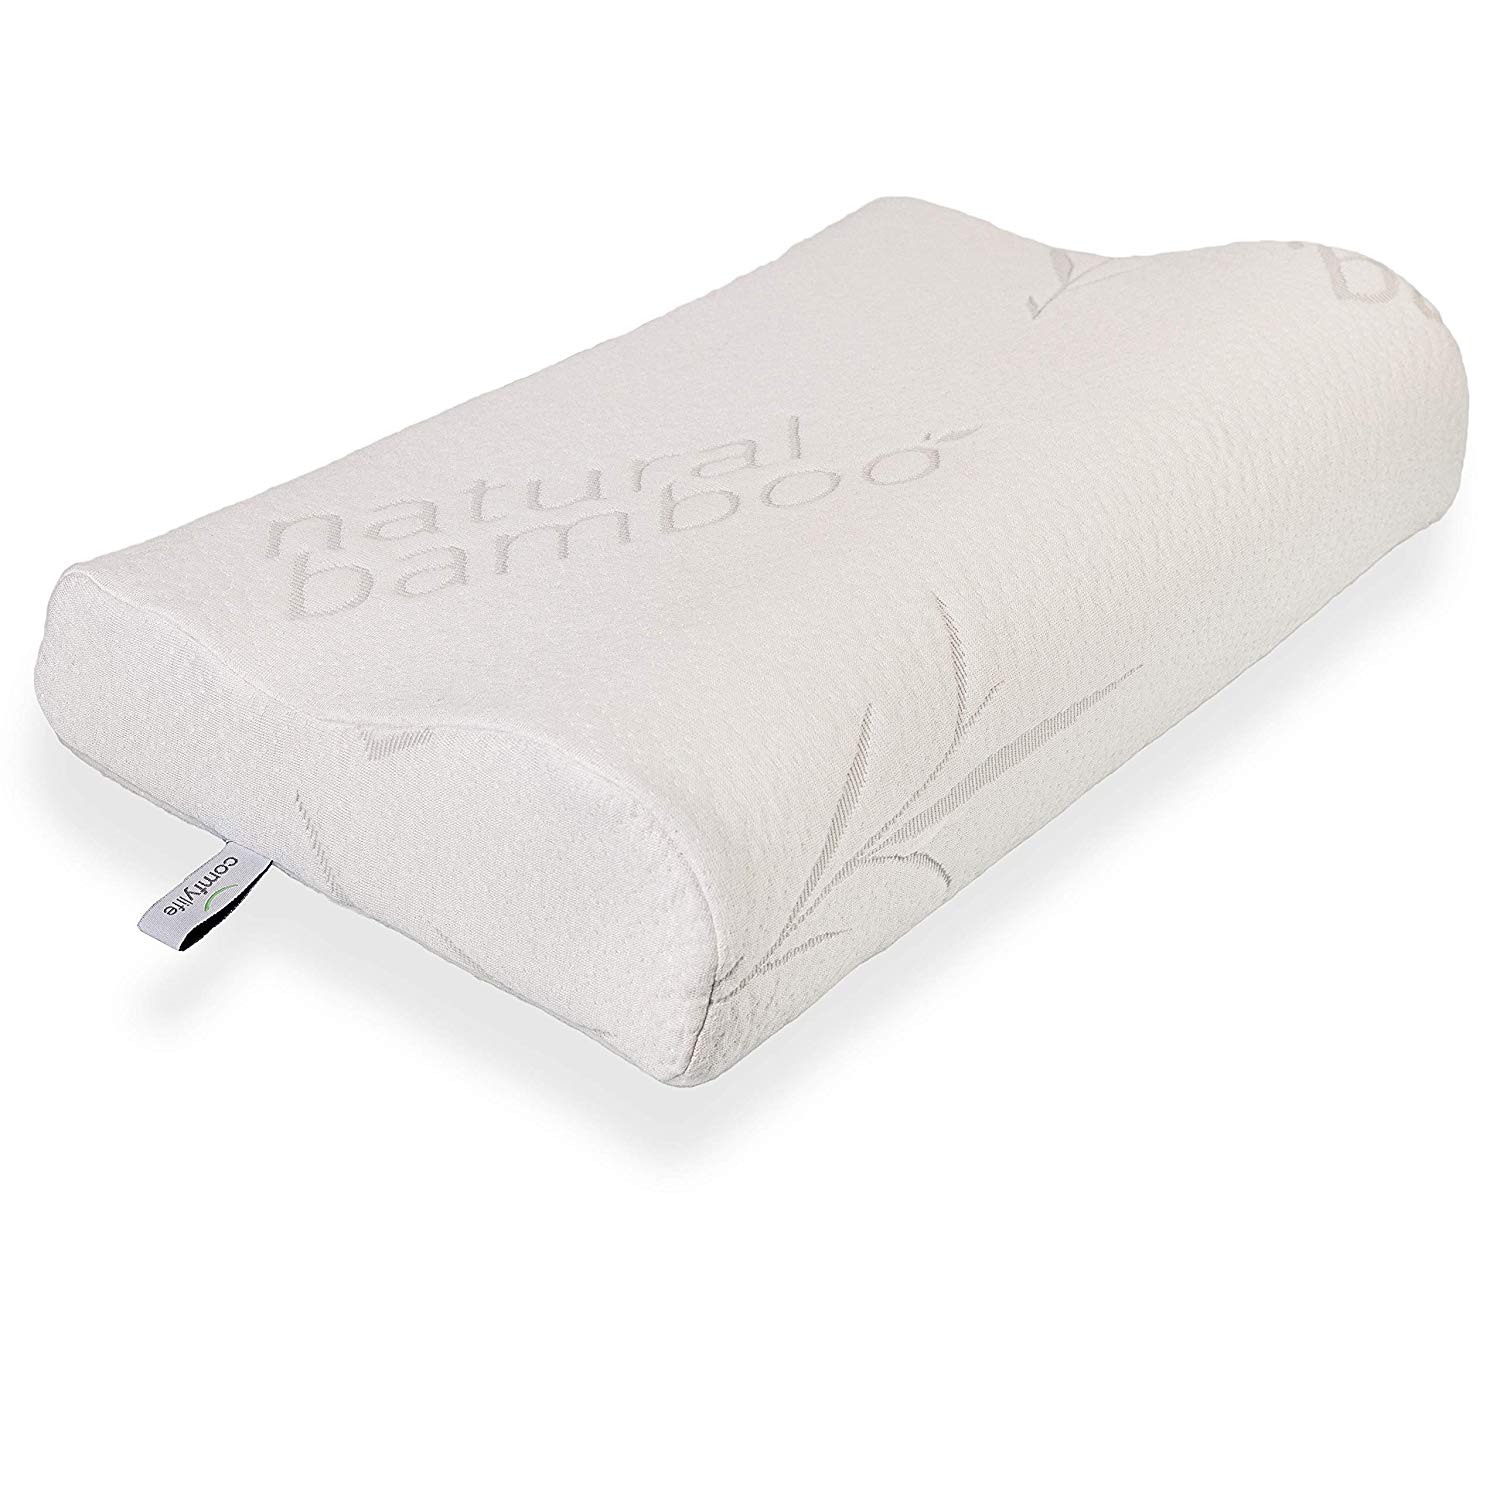 Image result for Bamboo Memory Foam Contour Pillow - A Firm Flexible Therapeutic Posturepedic Pillow for Sound Sleep and Reduced Neck and Shoulder Pain (24 x 16 in)